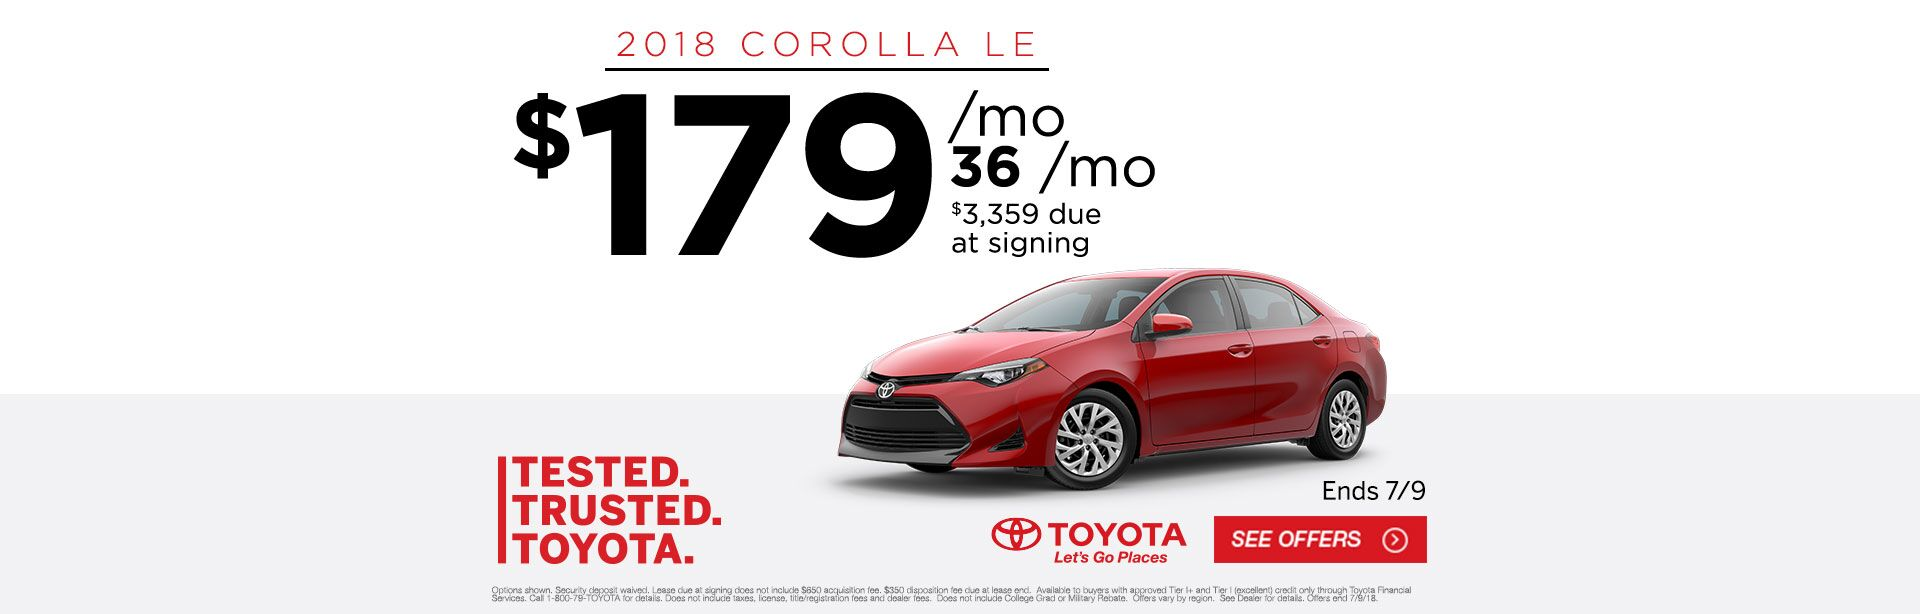 Tested Trusted Toyota Corolla 2018